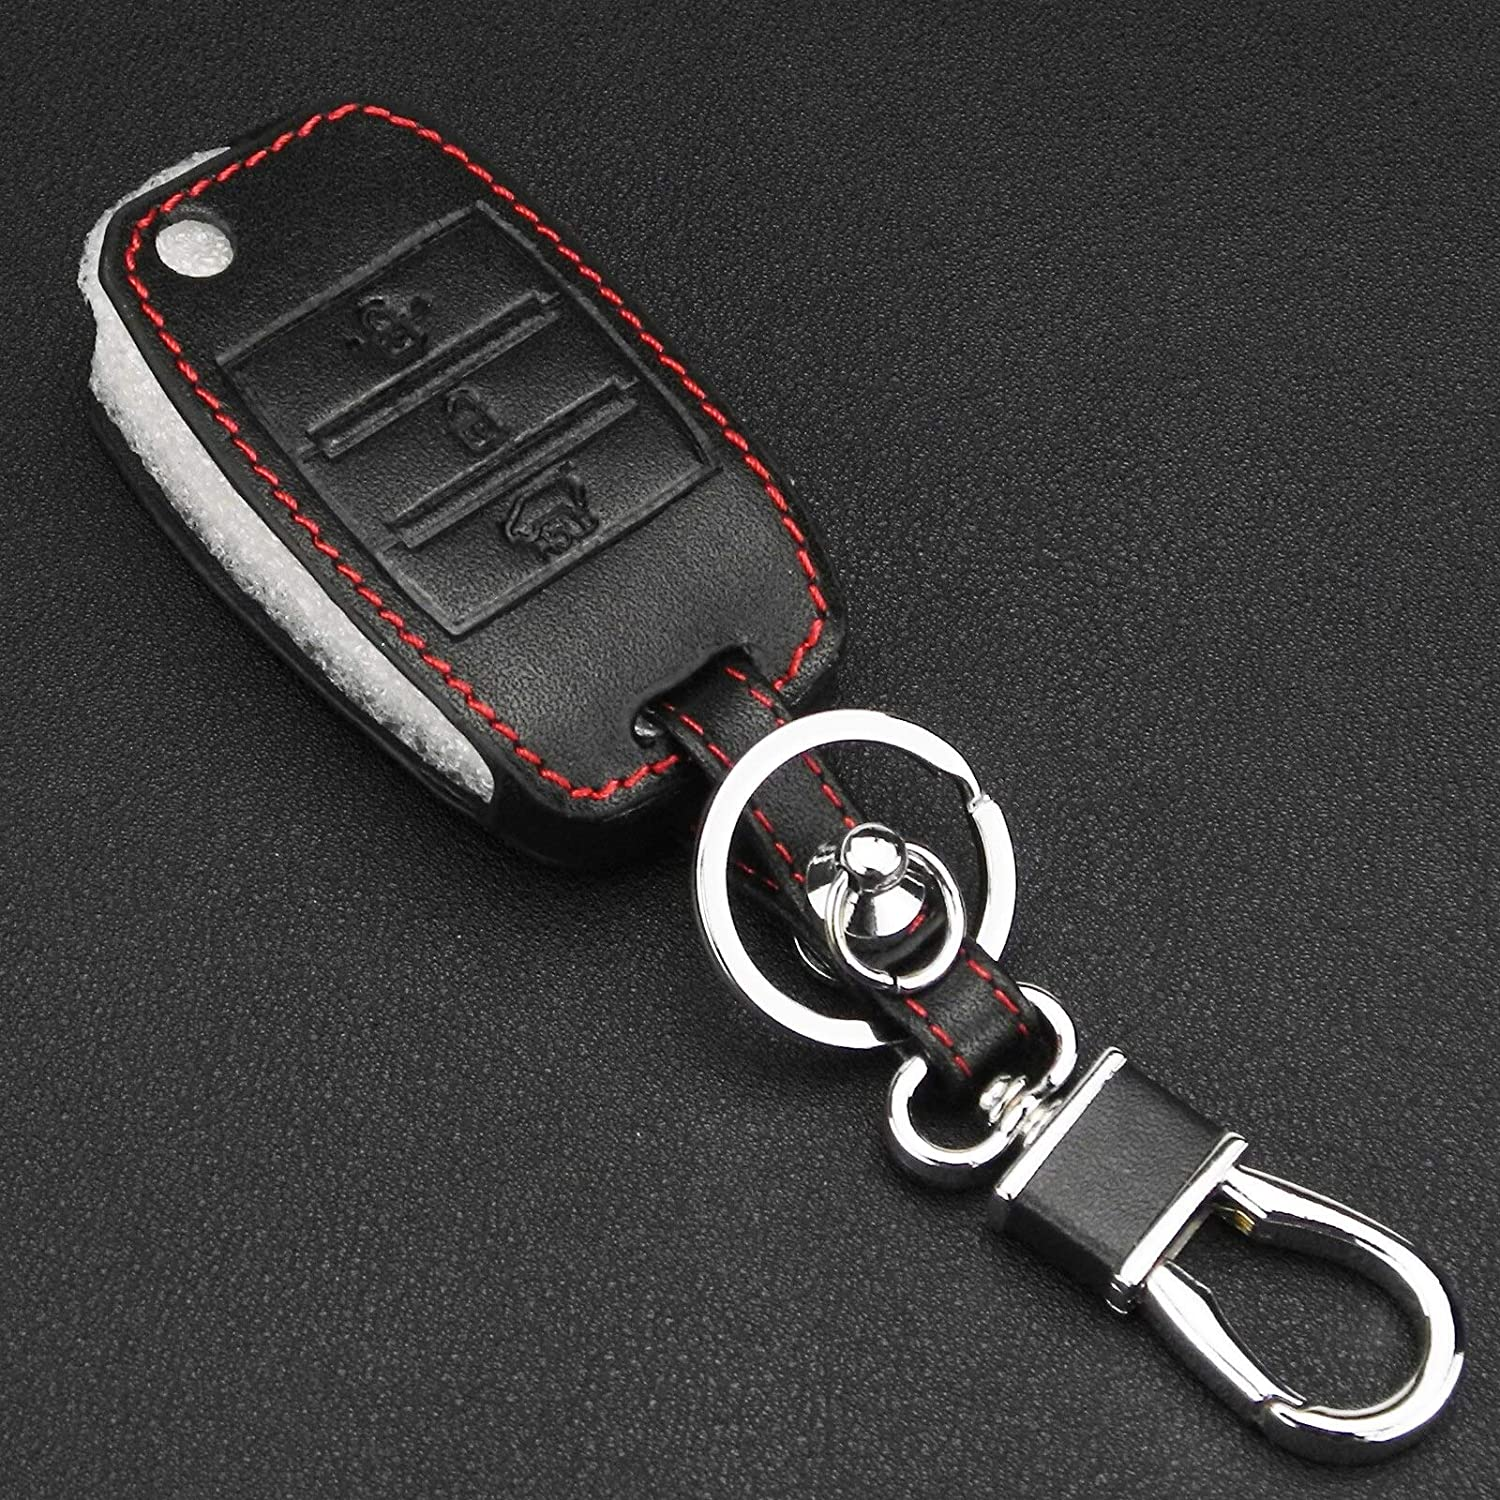 KCFC-53407 Key Opening large release sale Case Cover for Car Boston Mall 10pcs Buttons lot Re 3 Leather